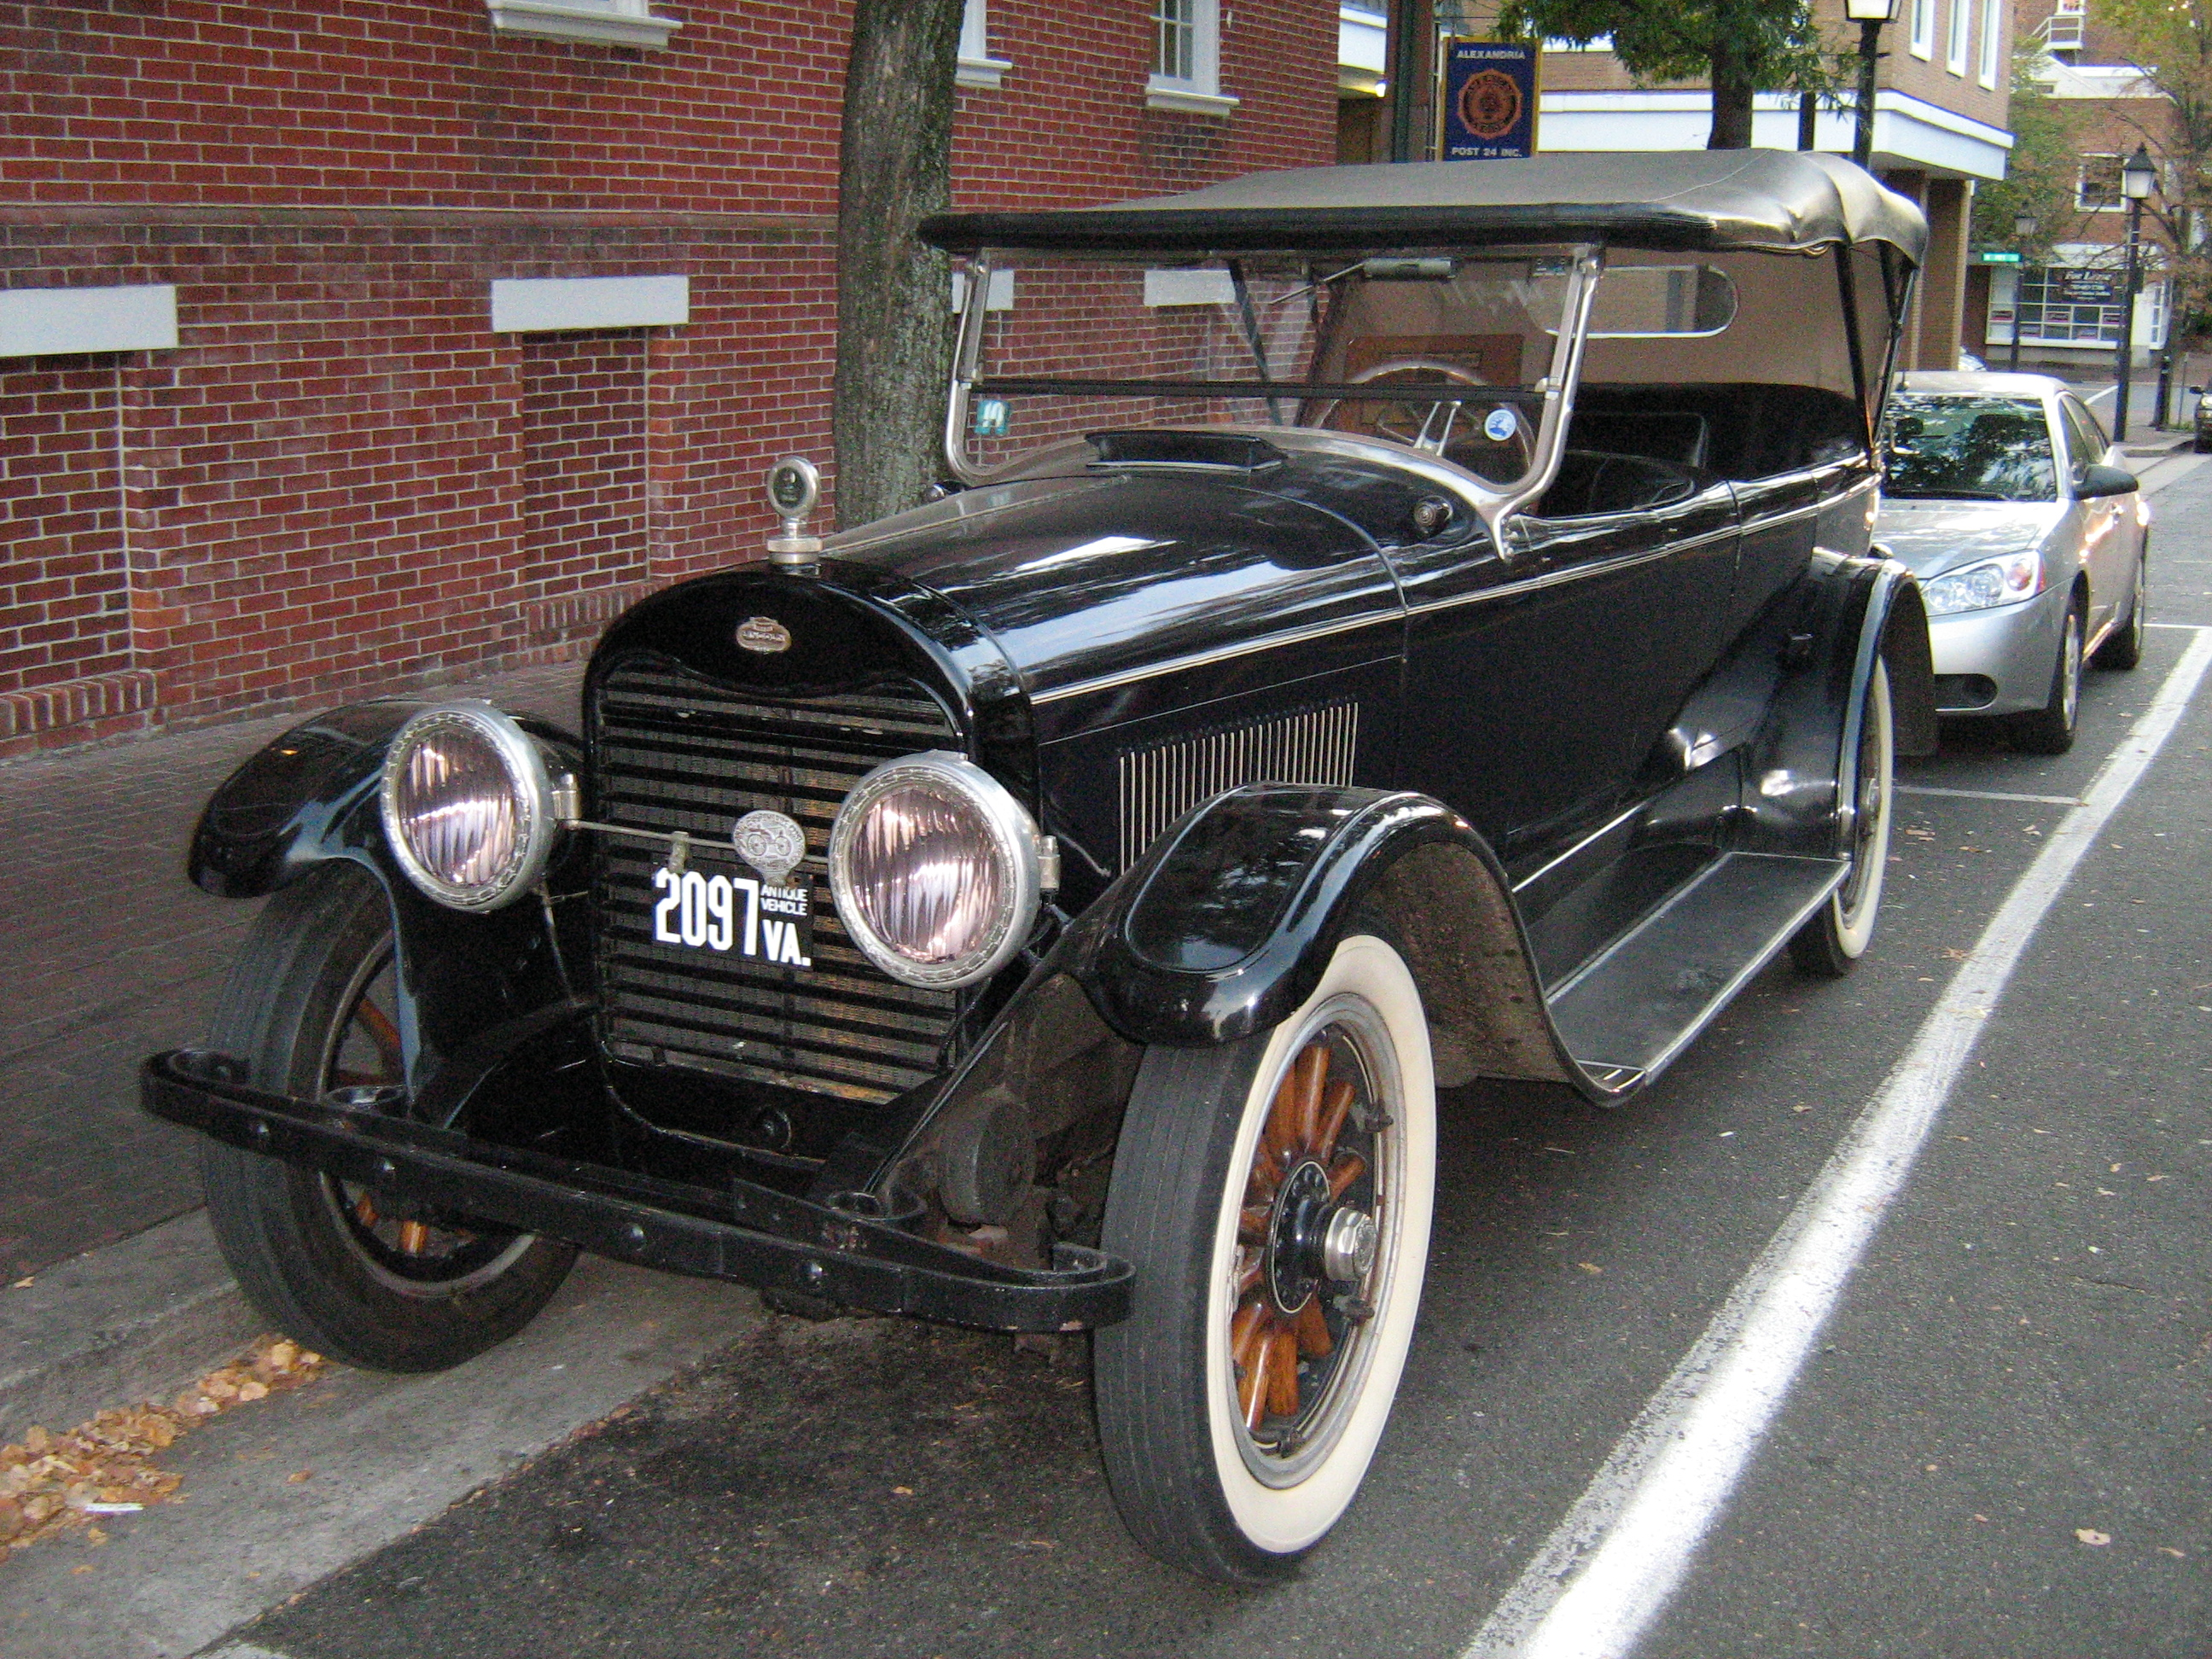 File:1922 Lincoln touring automobile.jpg - Wikimedia Commons